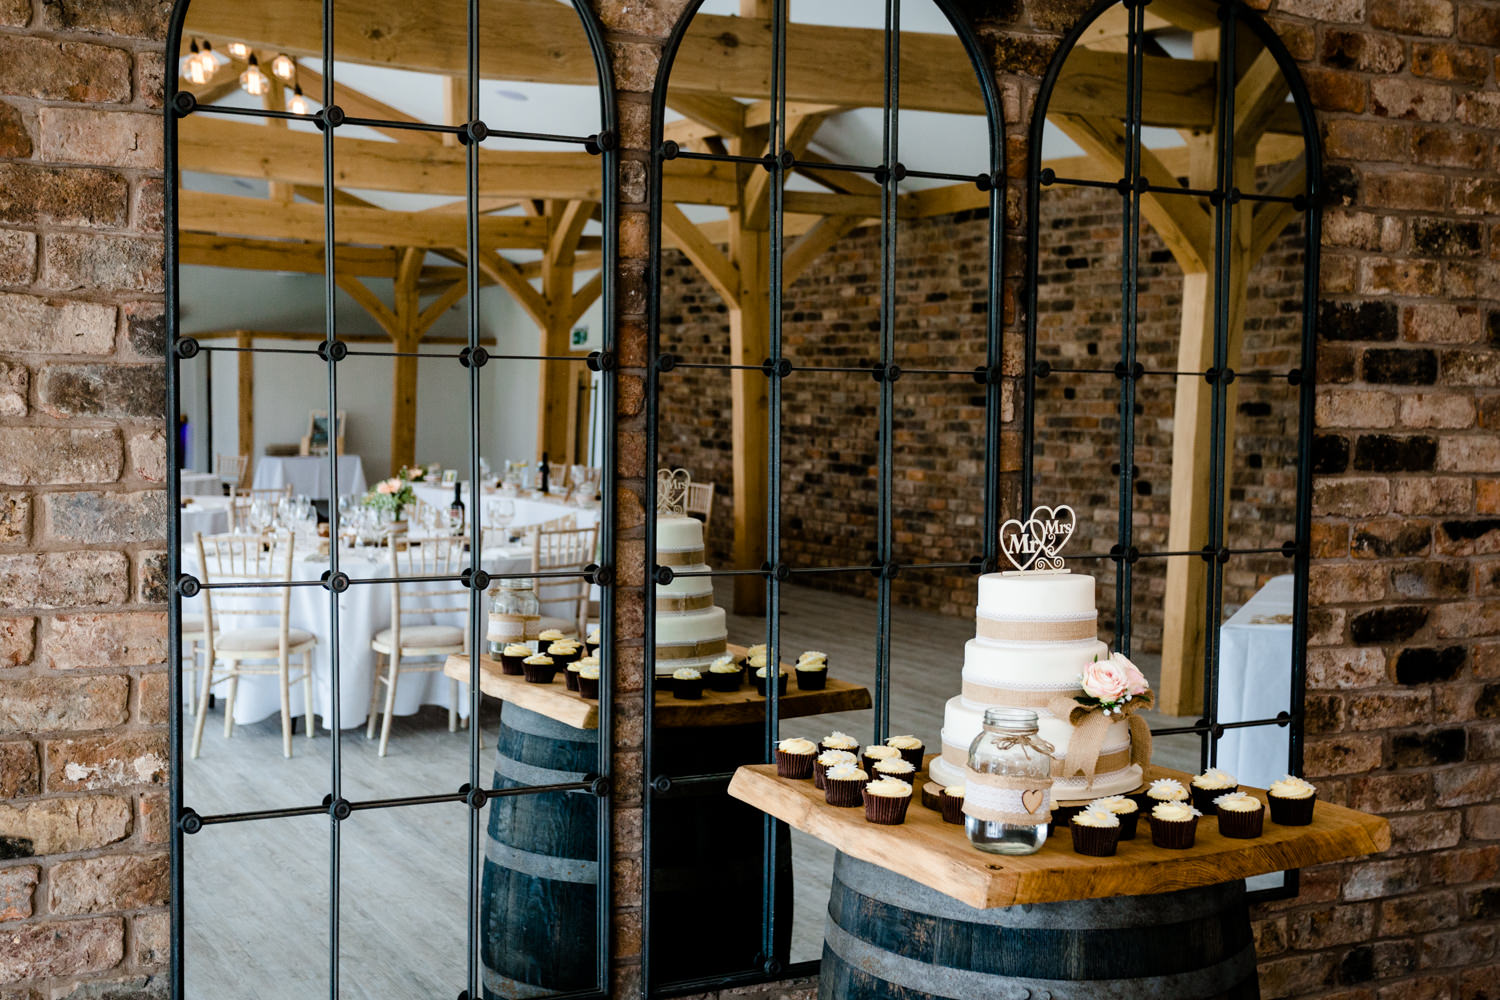 Mirrored wall and wedding cake at Pryor Hayes venue, Cheshire